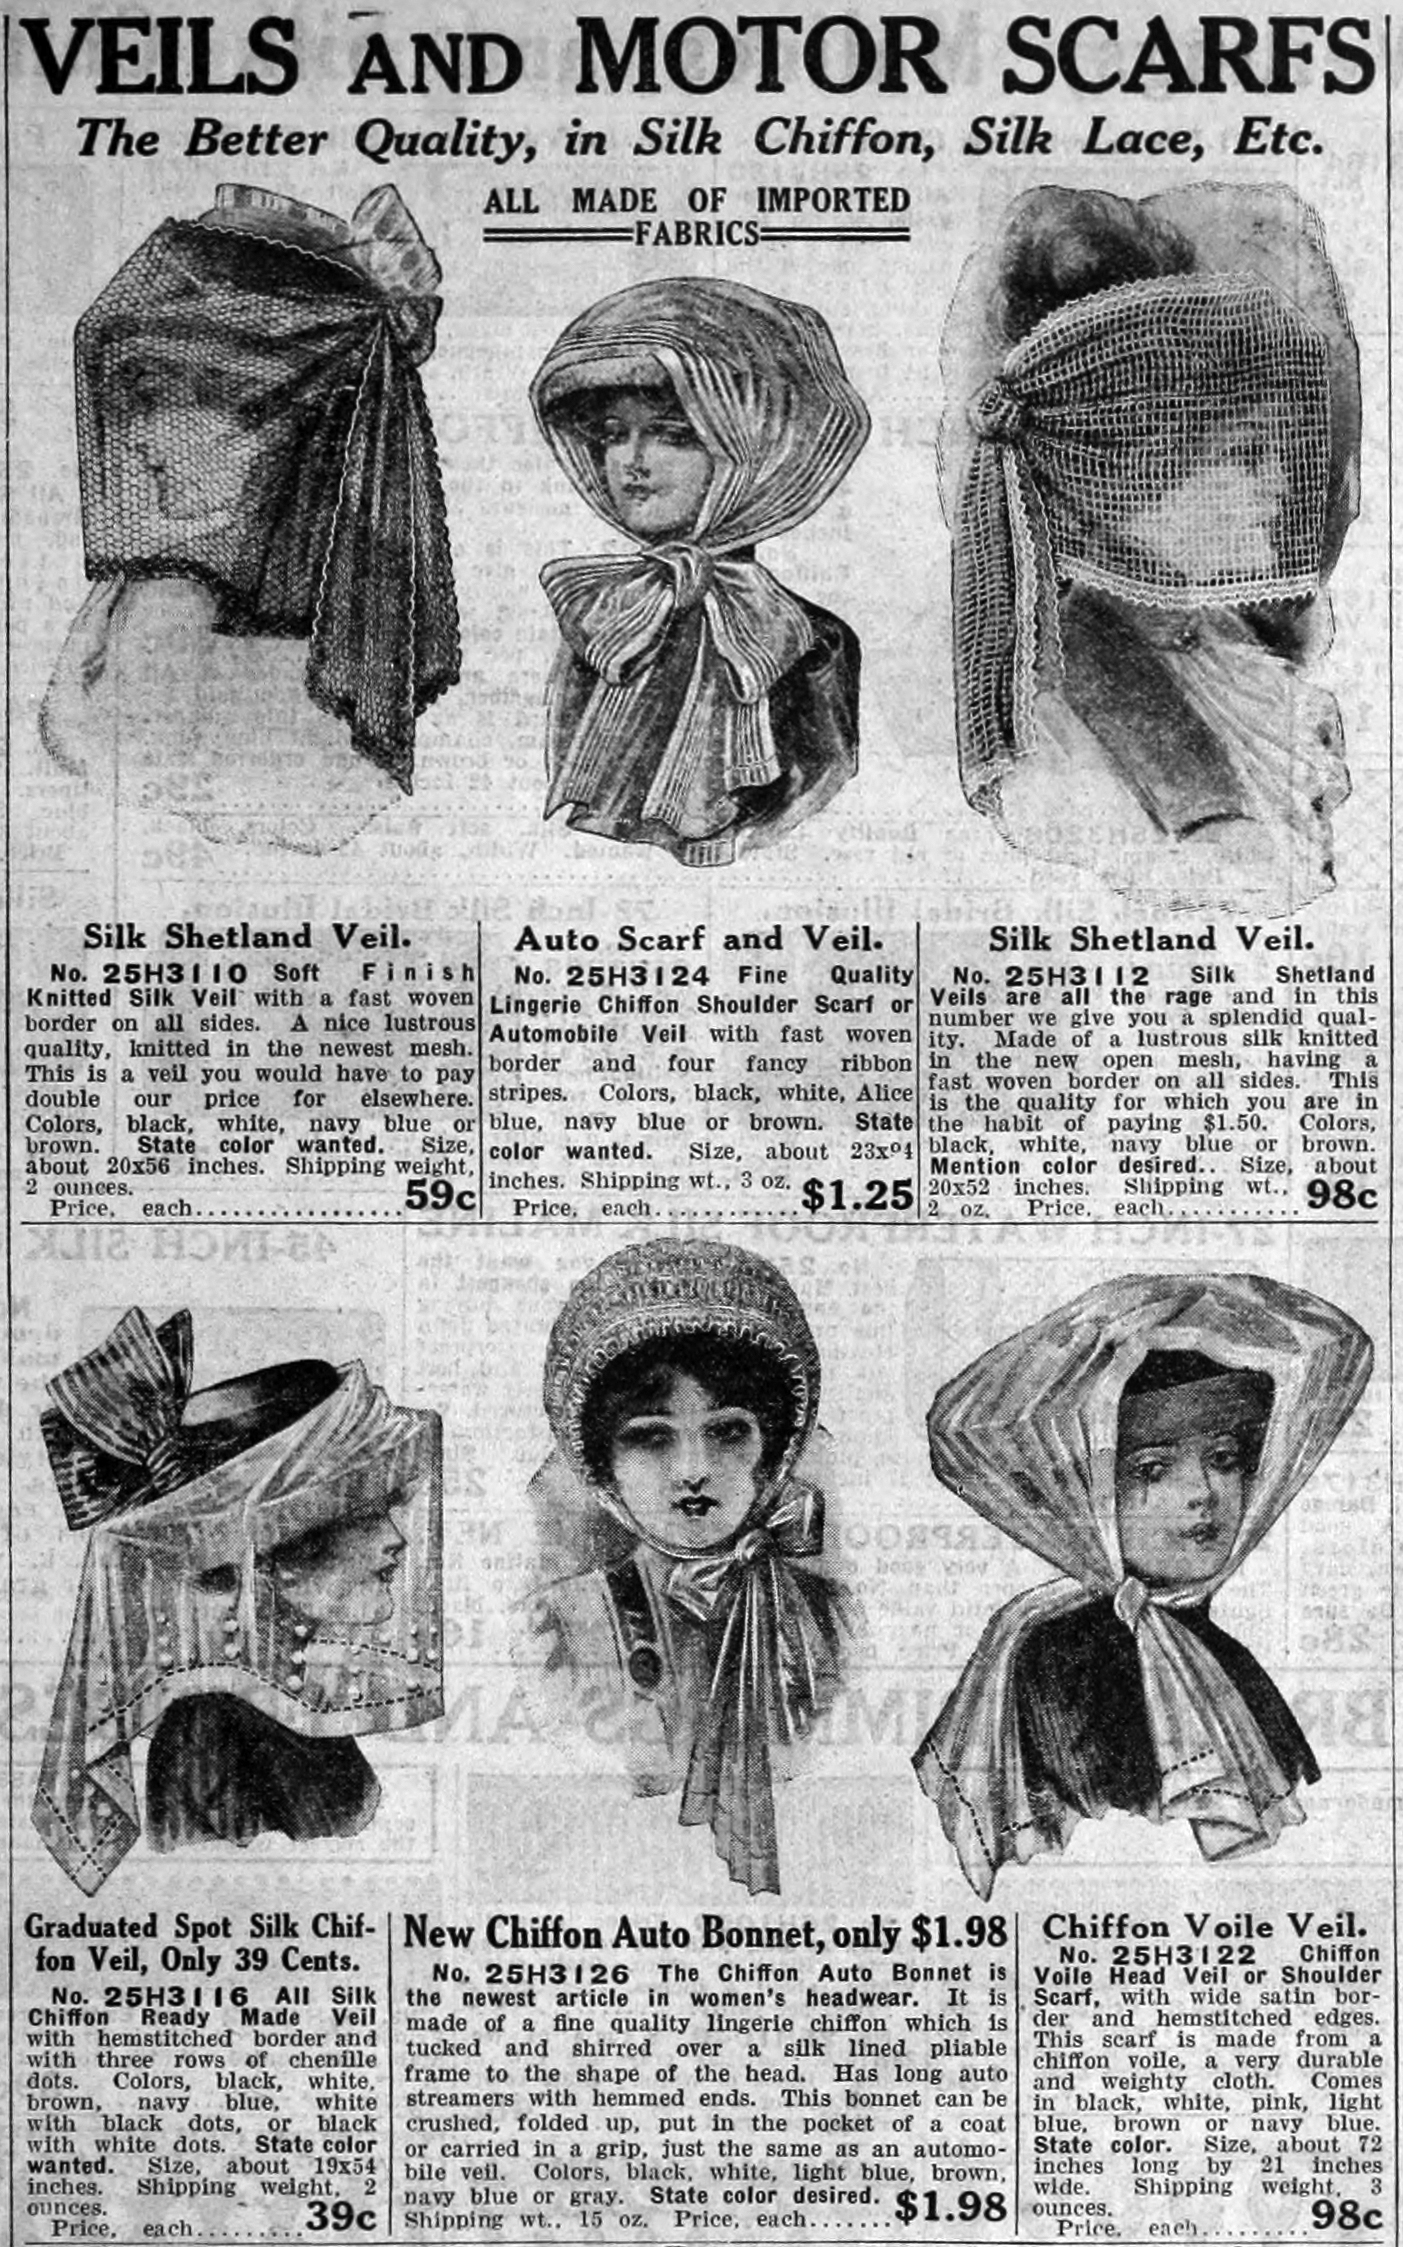 Veils and Scarves for Motoring